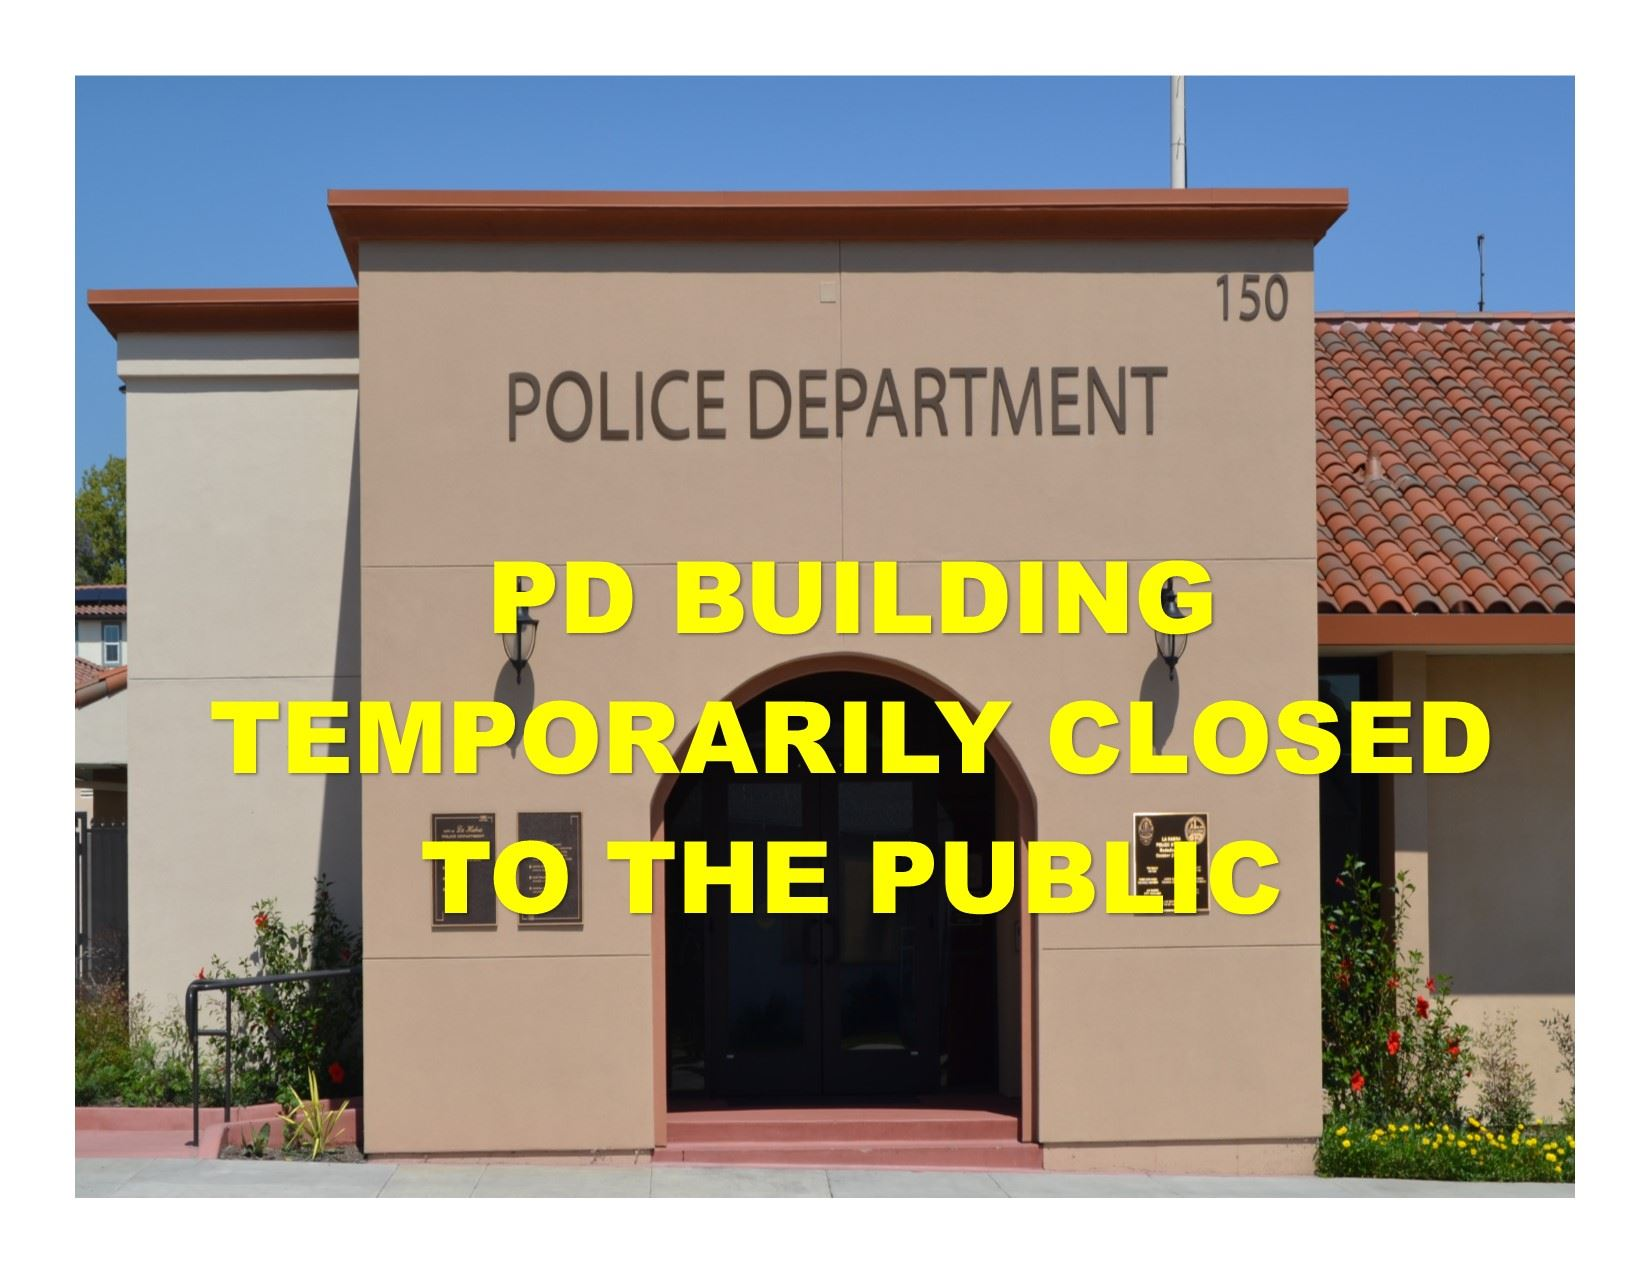 PD BUILDING CLOSURE COVID 19